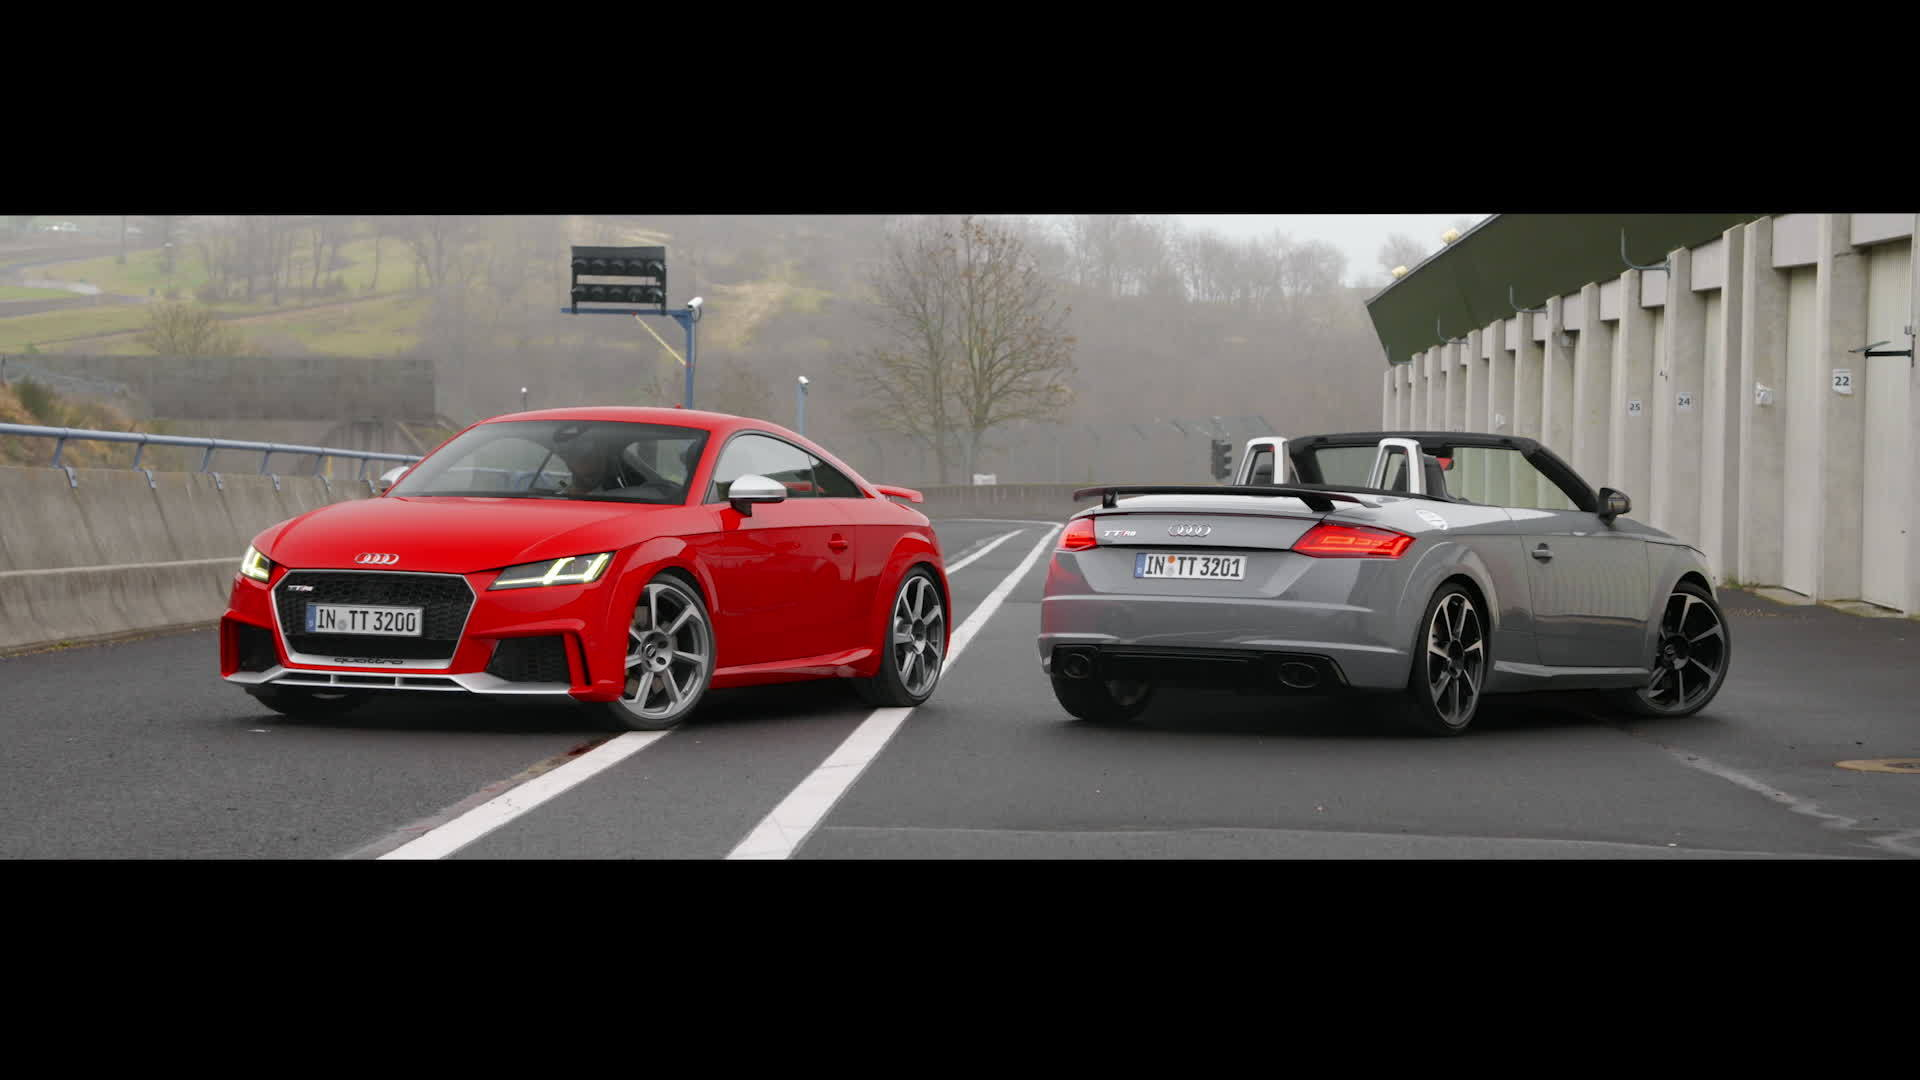 TT RS Coupé and TT RS Roadster (2016)